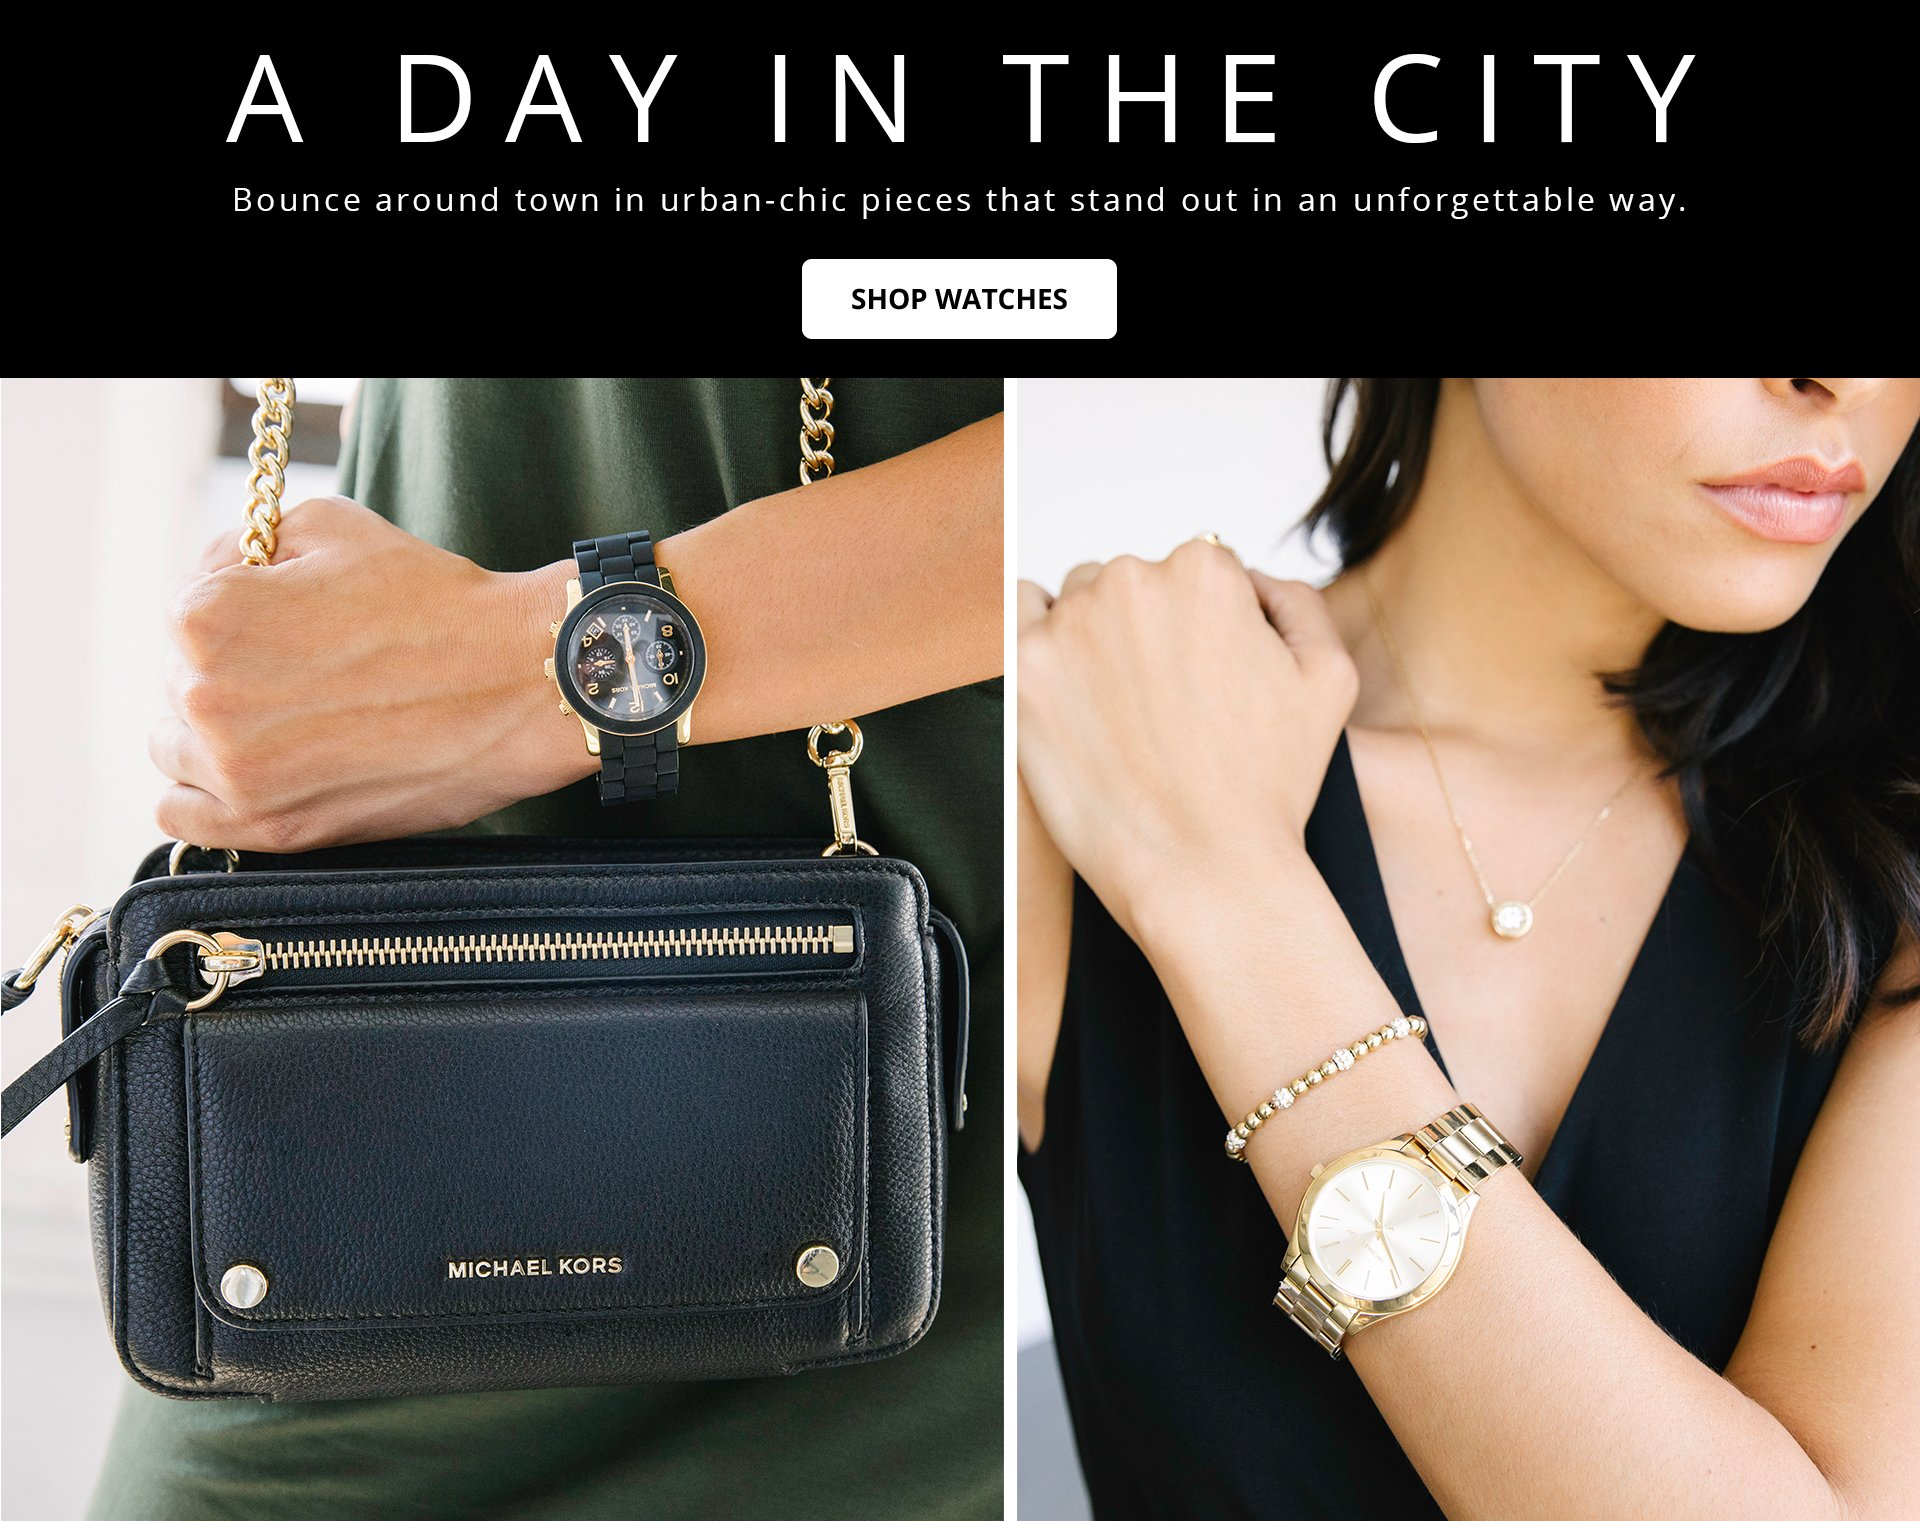 Bounce around town in urban-chic piaces that stand out in an unforgettable way. Shop Watches